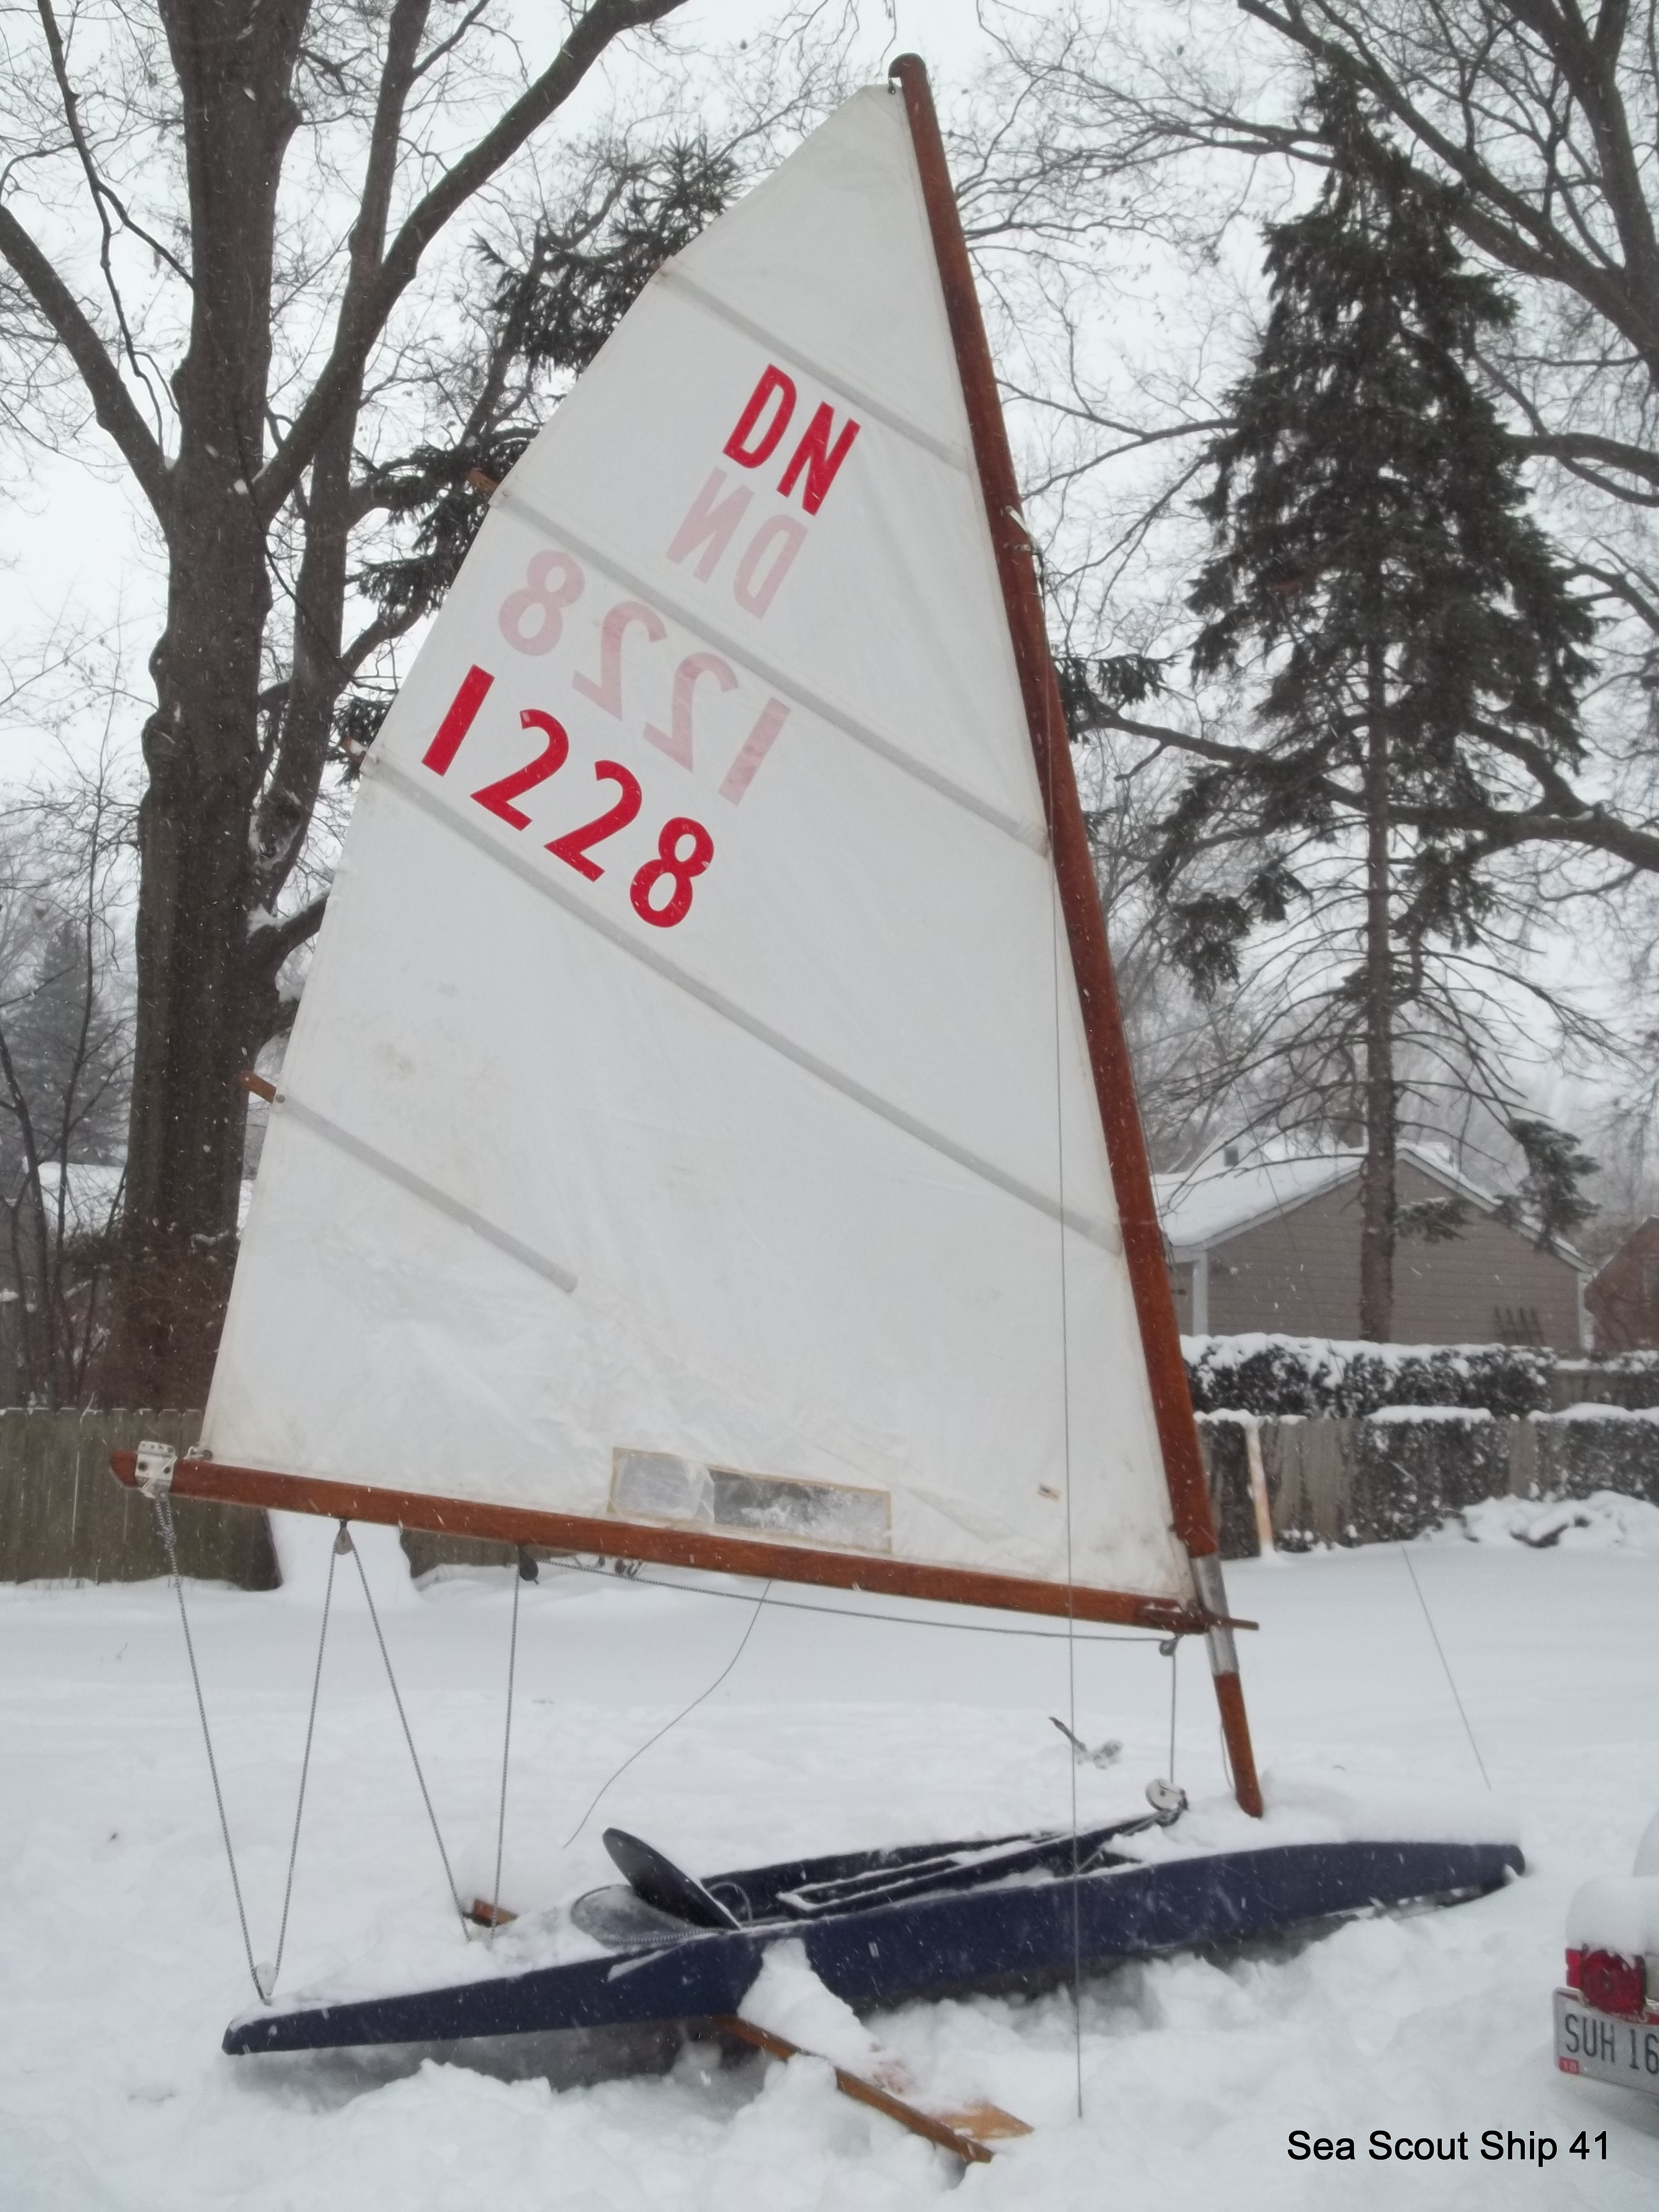 Unfortunately iceboats don't go to well in the snow.